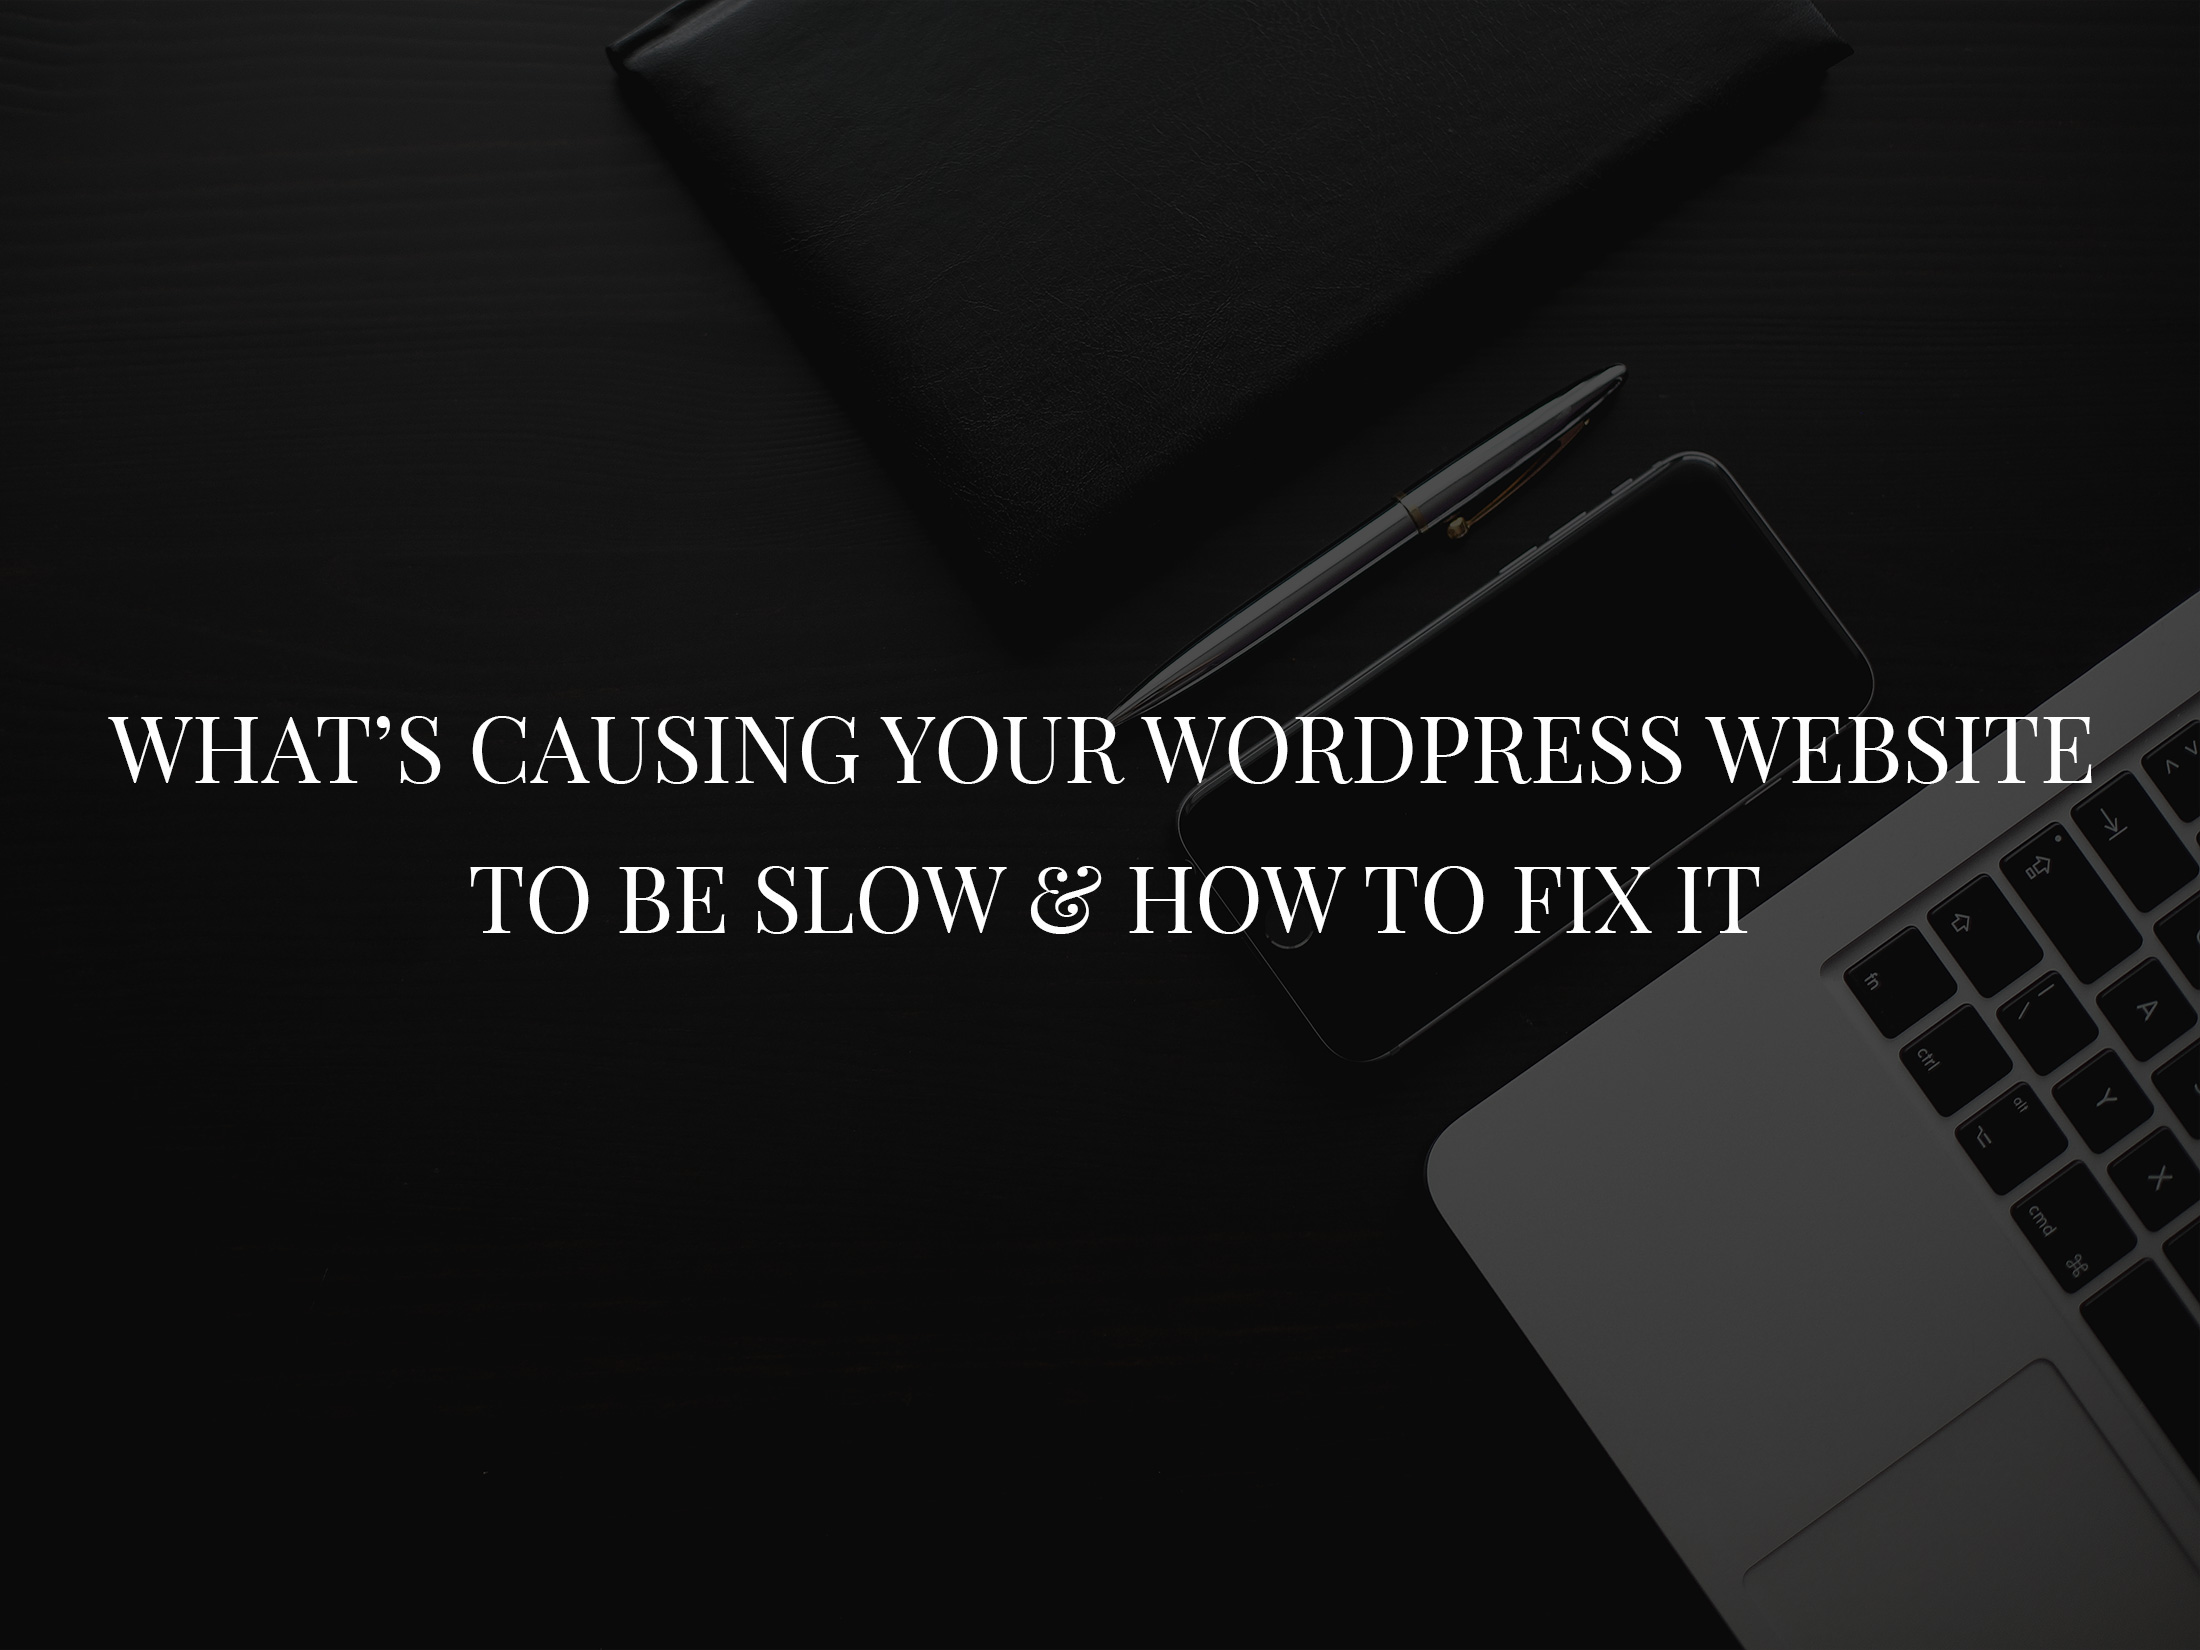 What's causing your WordPress website to be slow and how to fix it